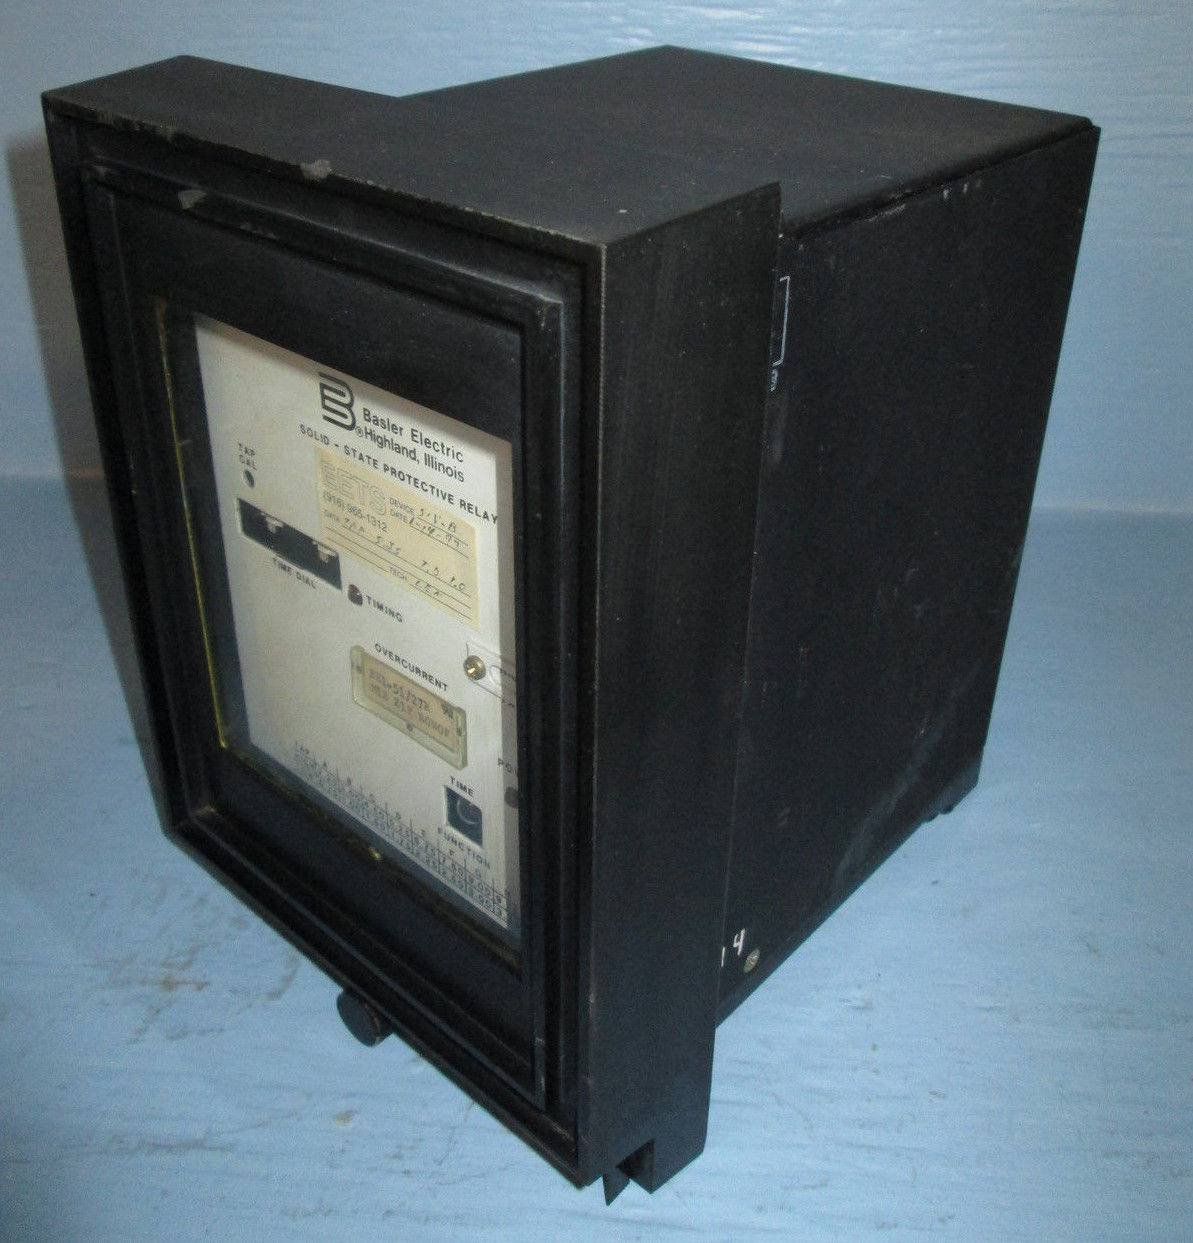 Basler Electric Be1 51 27r Overcurrent Relay M1e Z1p B0n0f Be15127r Electromagnetic Computer Solid State Industrial Scientific